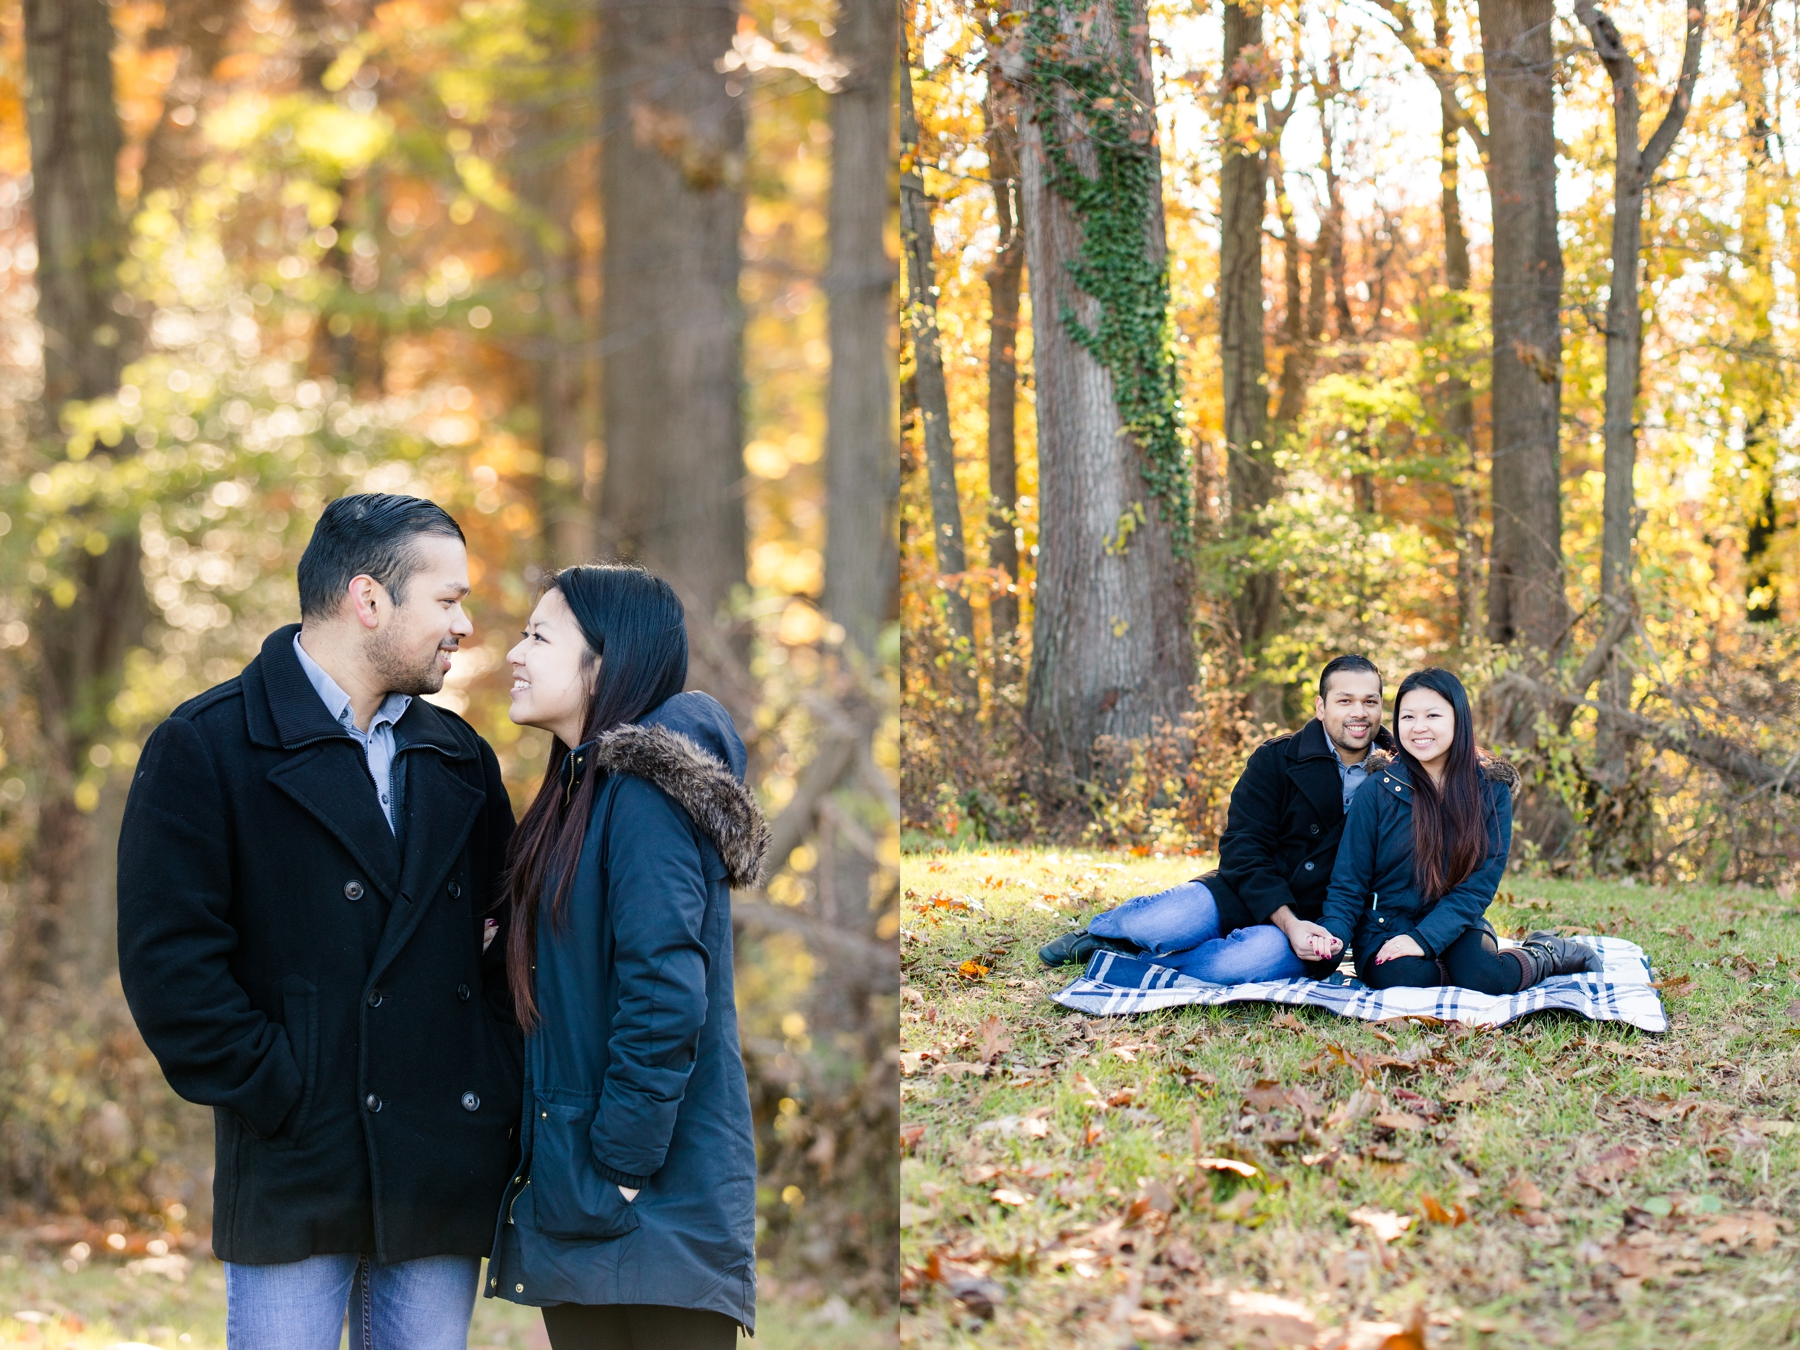 Stephanie + Naveed's Engagement Photography at Deep Cut Gardens